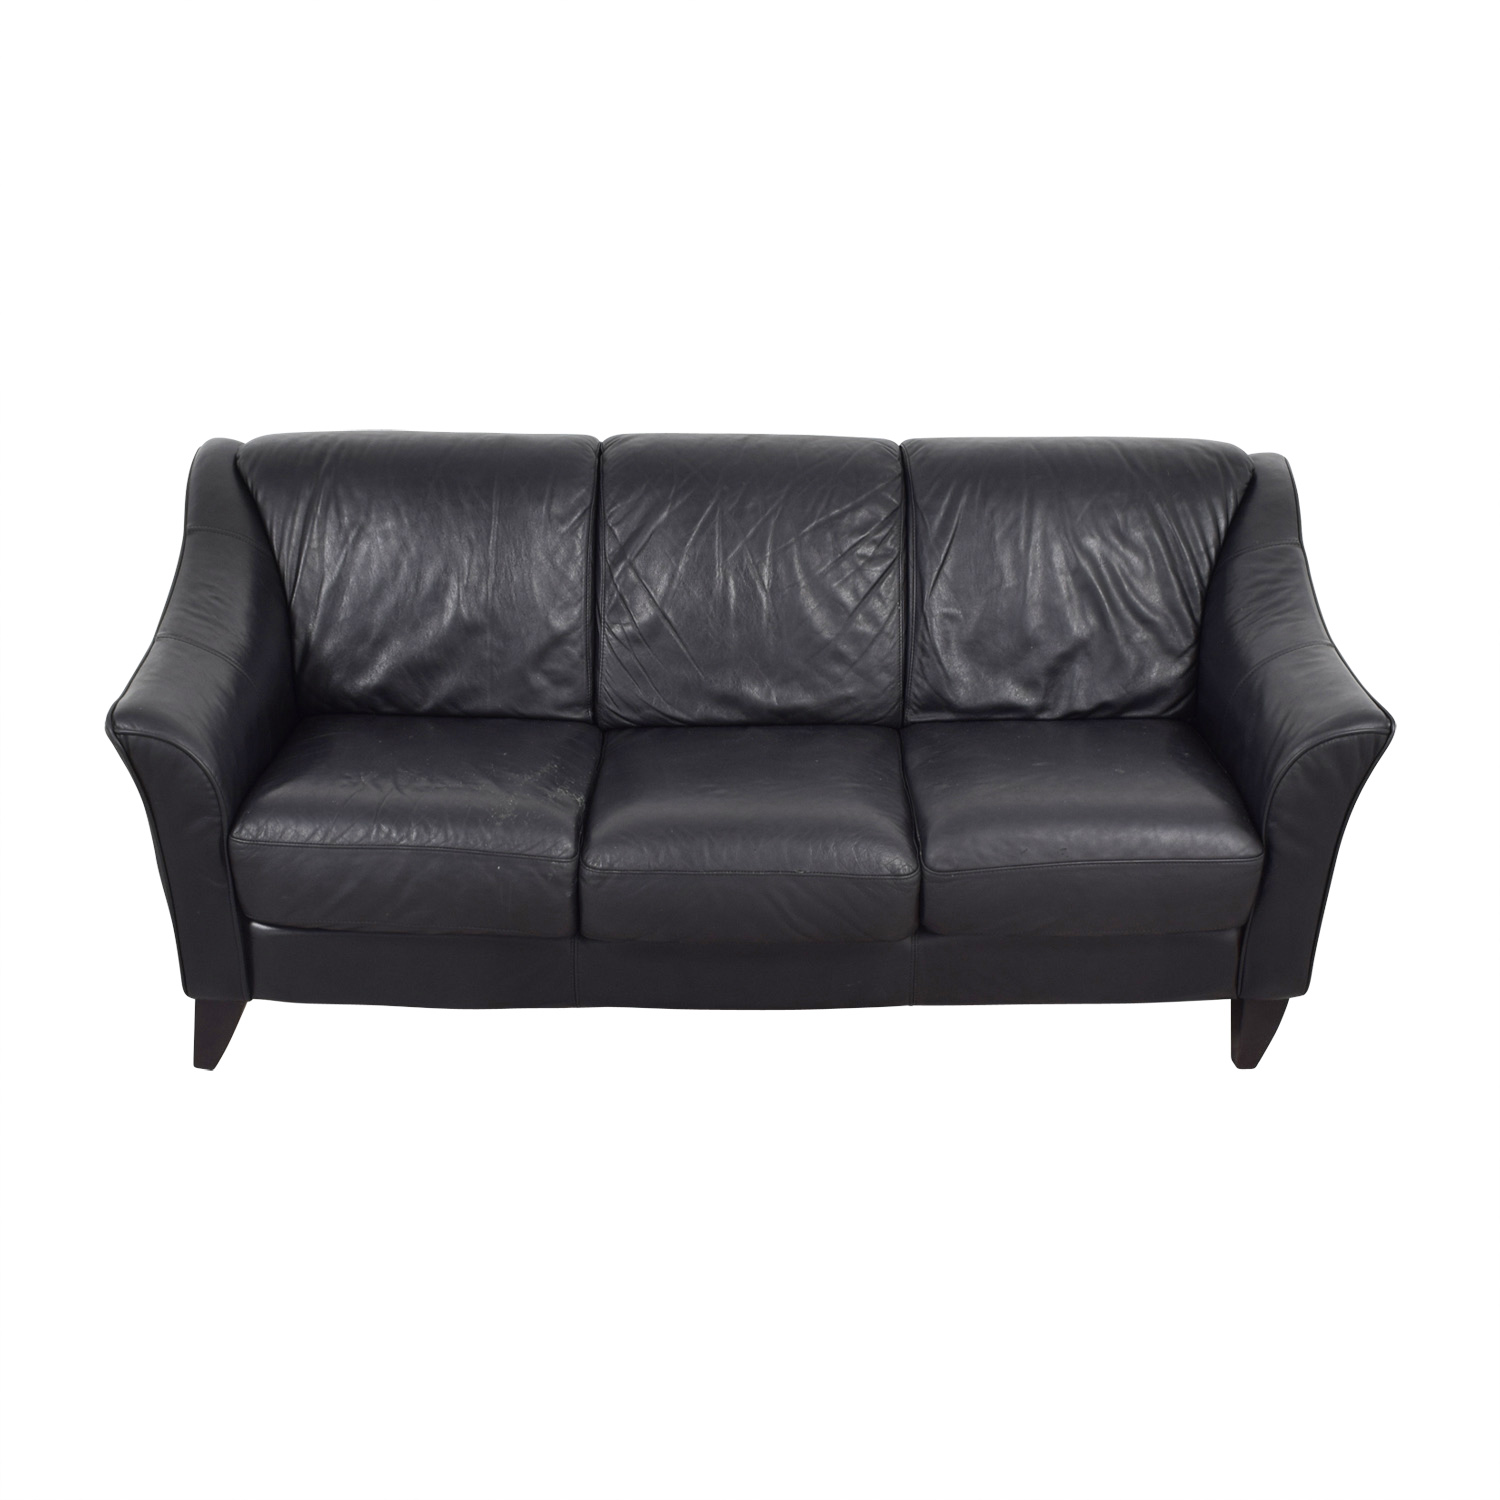 buy Bloomingdales Three-Cushion Black Leather Sofa Bloomingdales